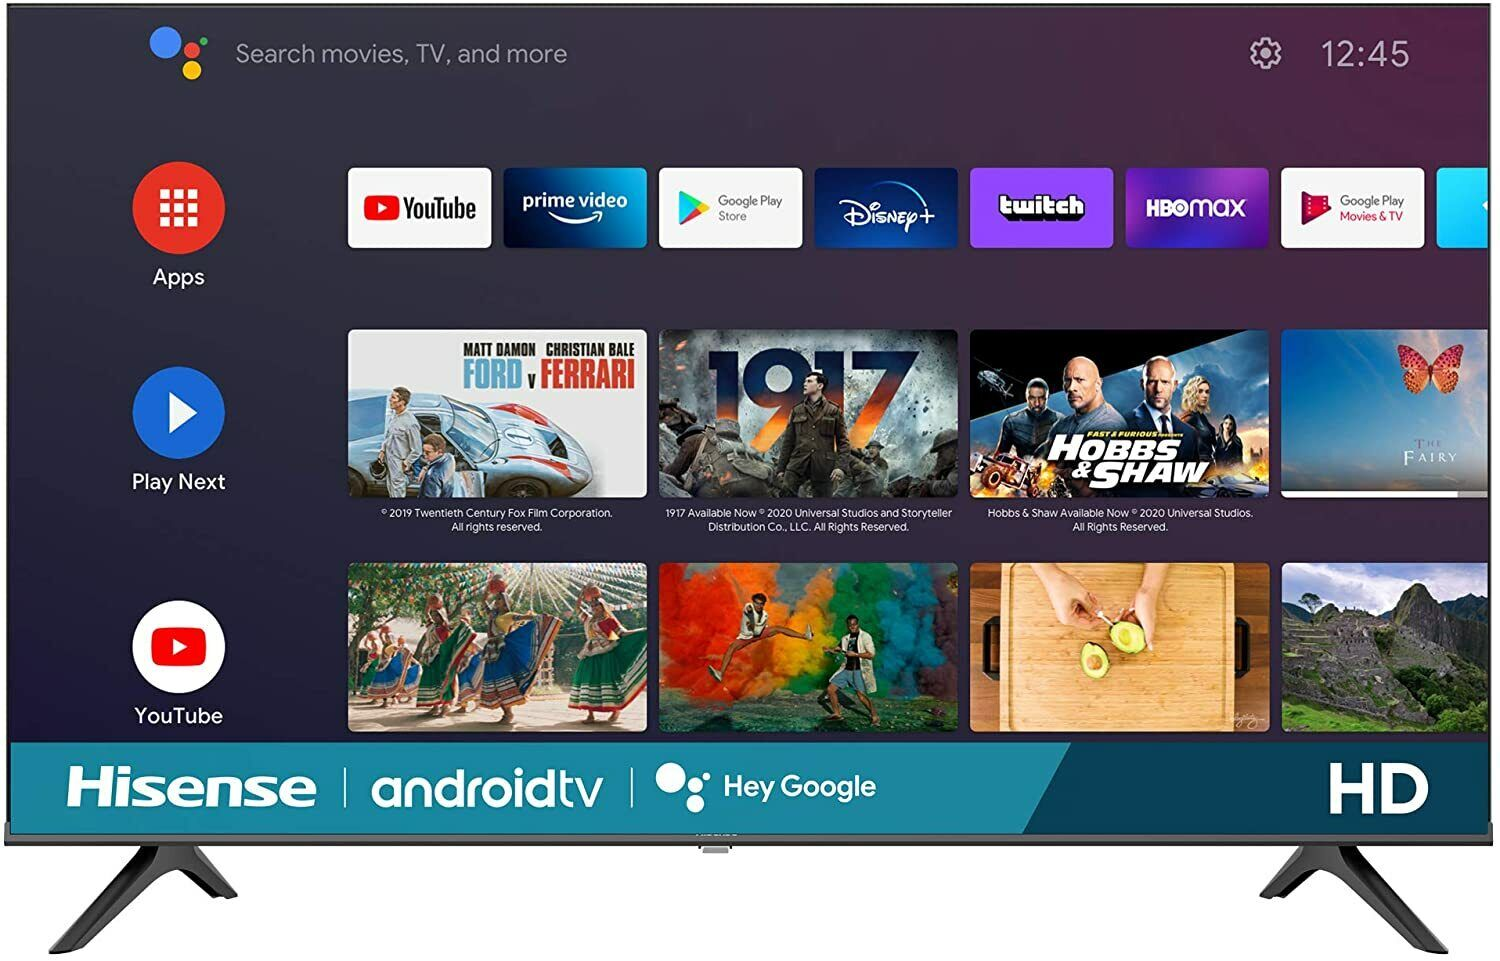 Smart TV Hisense 32-Inch Android Platform With Voice Remote 2020 Newest Model - $189.90